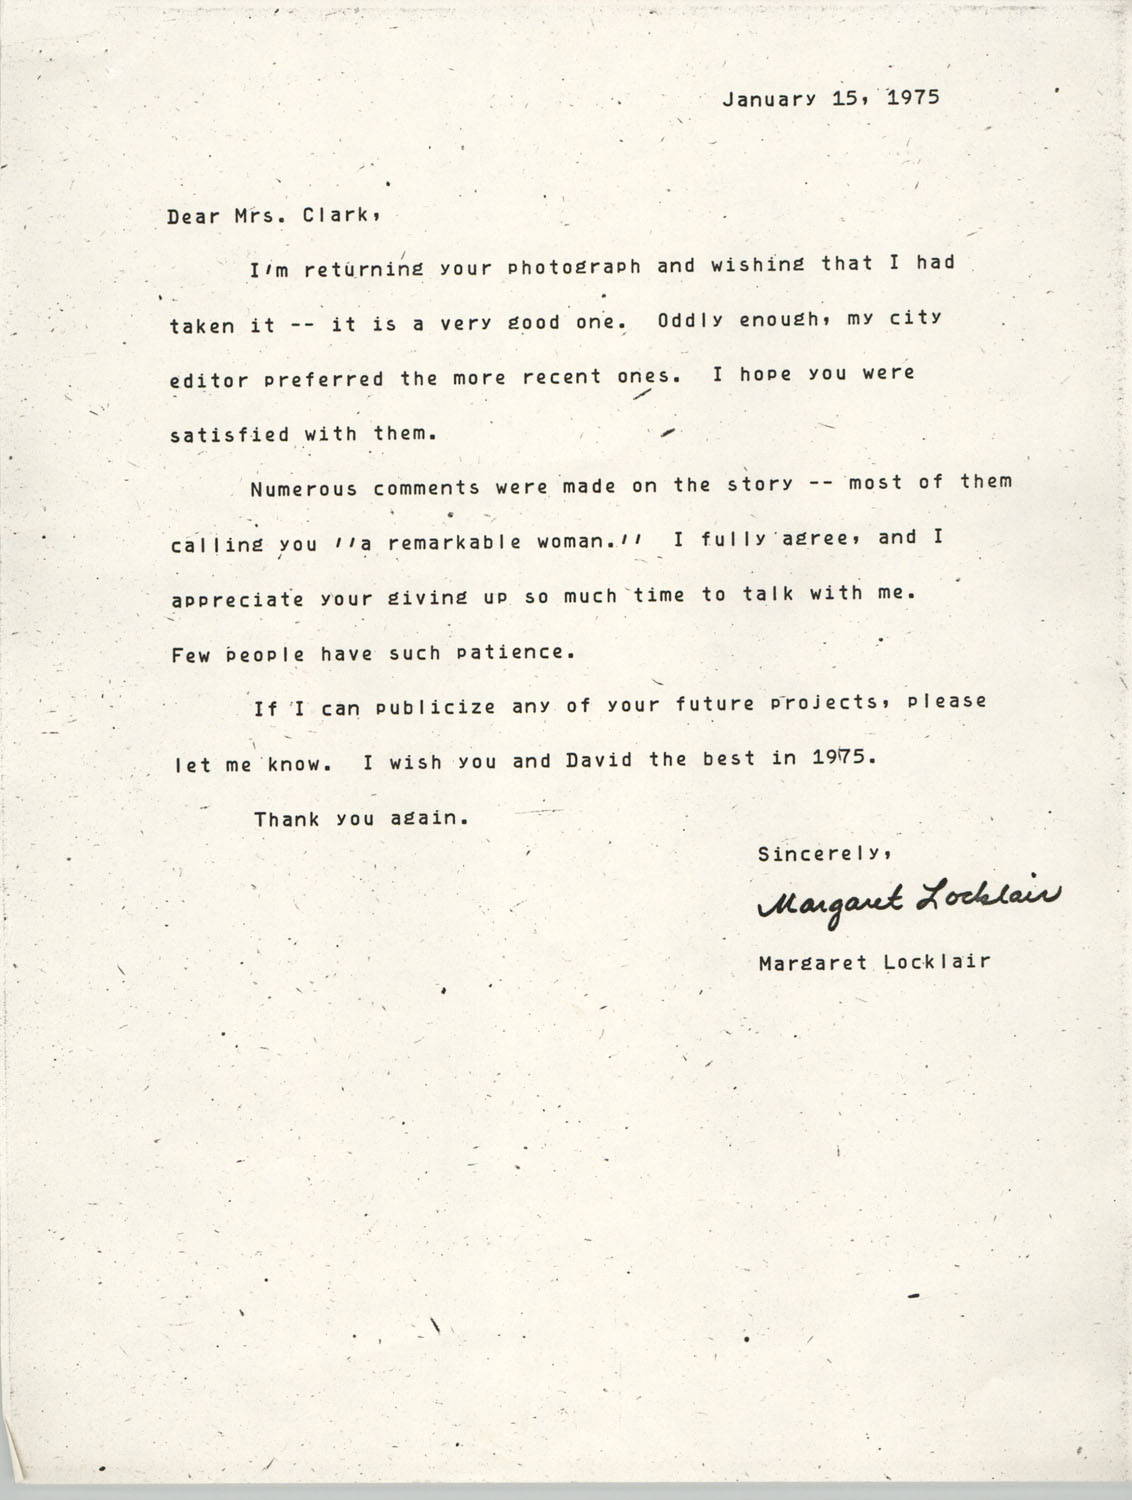 Letter from Margaret Locklair to Septima P. Clark, January 15, 1975